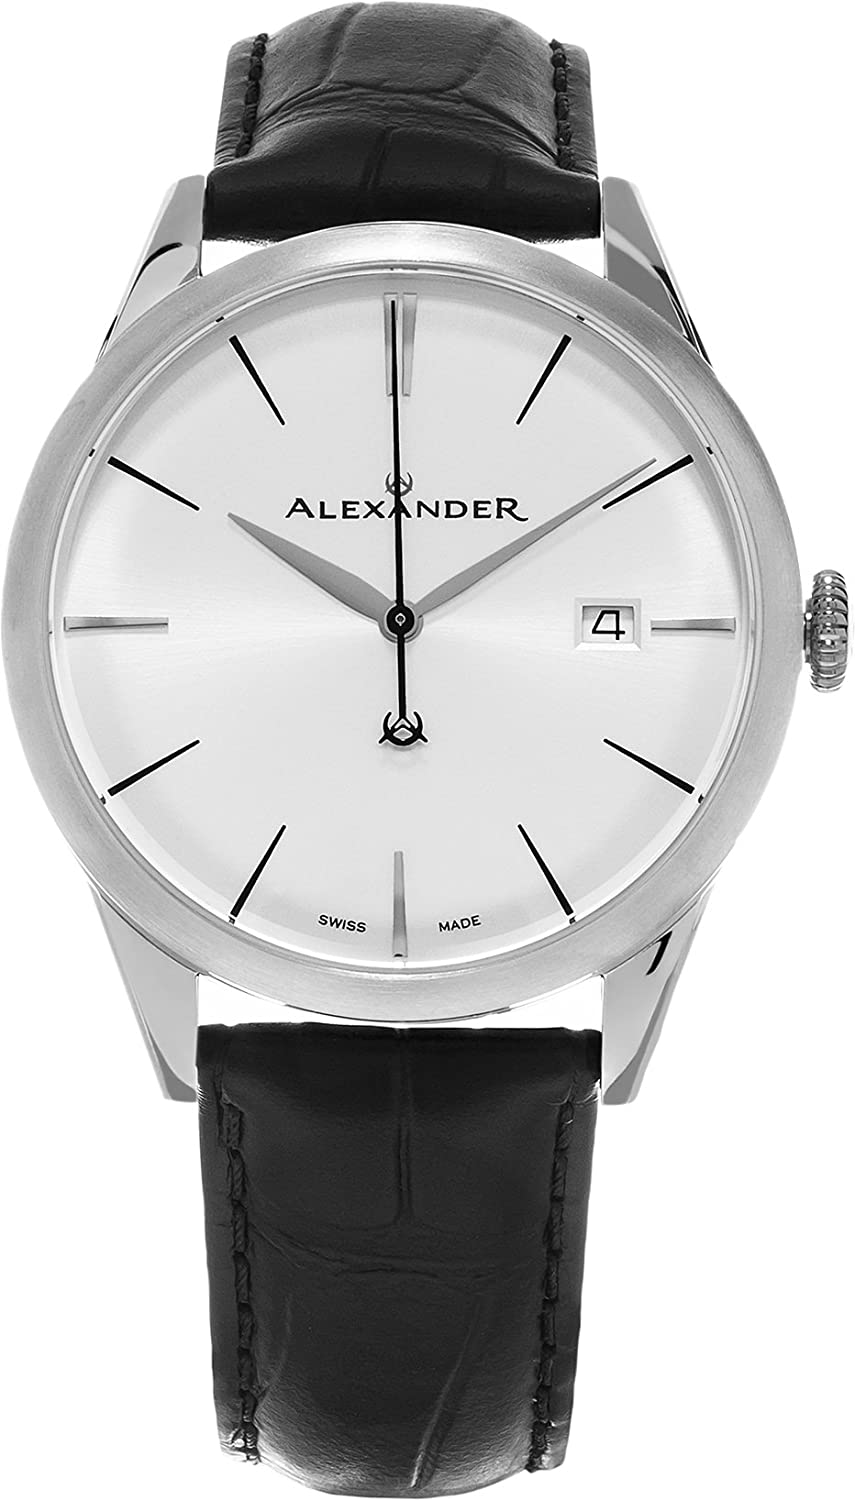 Alexander Heroic Sophisticate Men s Silver Dial Black Leather Strap Swiss Made Watch A911-02